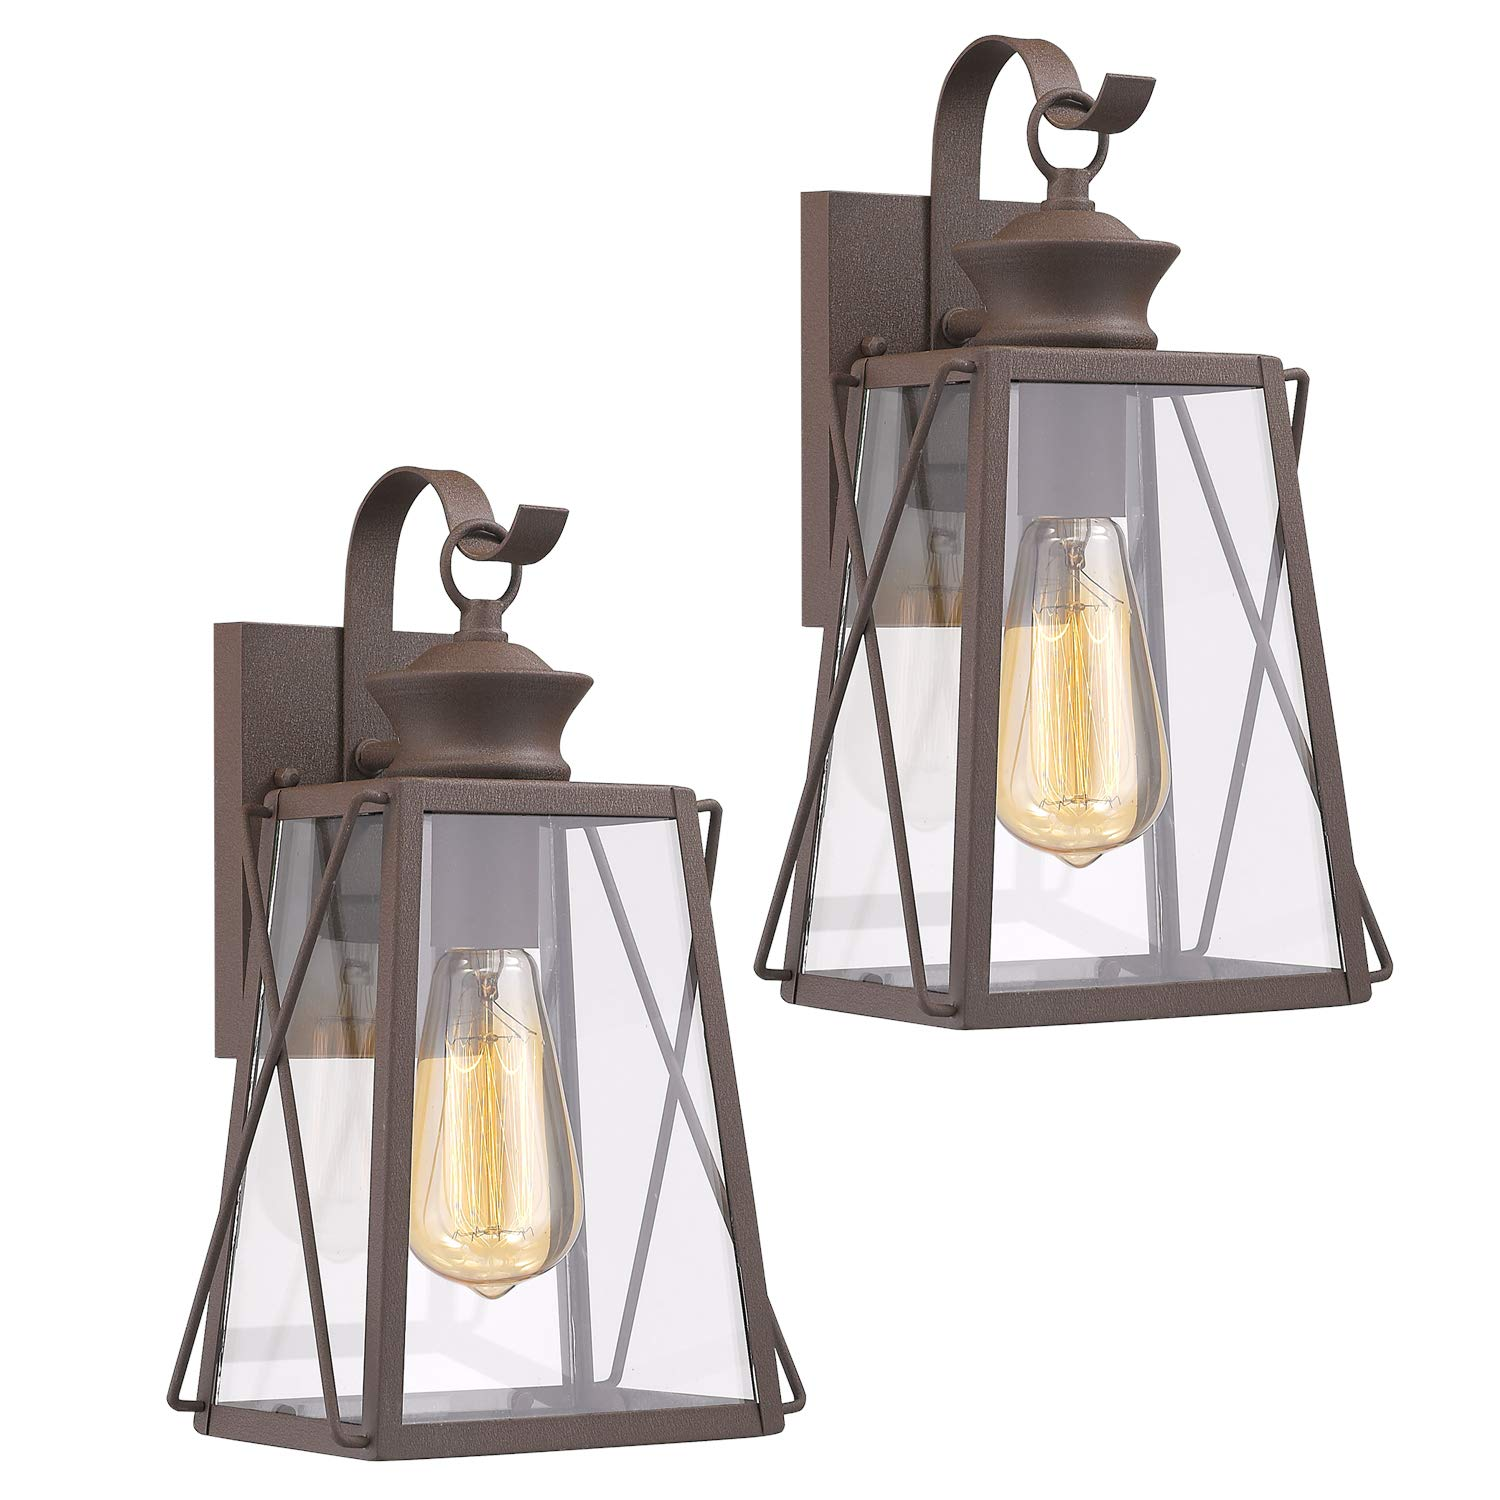 Emliviar Outdoor Wall Light Fixtures 2 Pack, Porch Light in Rustic Finish with Clear Glass Shade, 1810-CW1-2PK